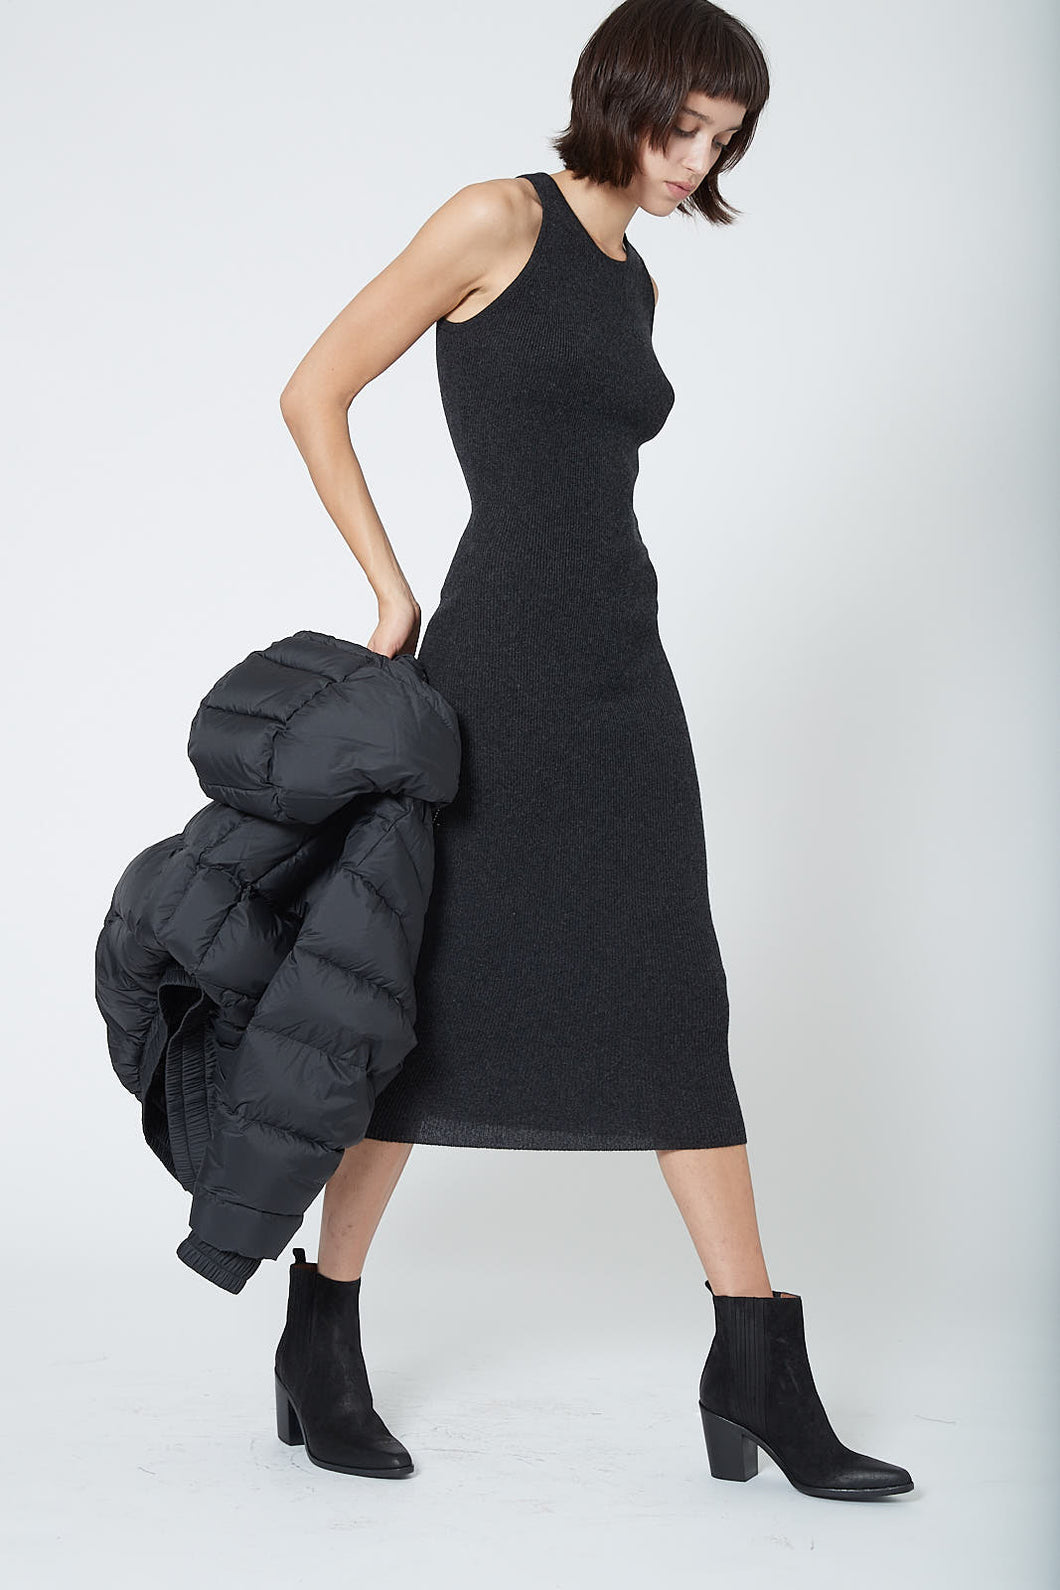 KES Cashmere Halter Dress FW19- Charcoal